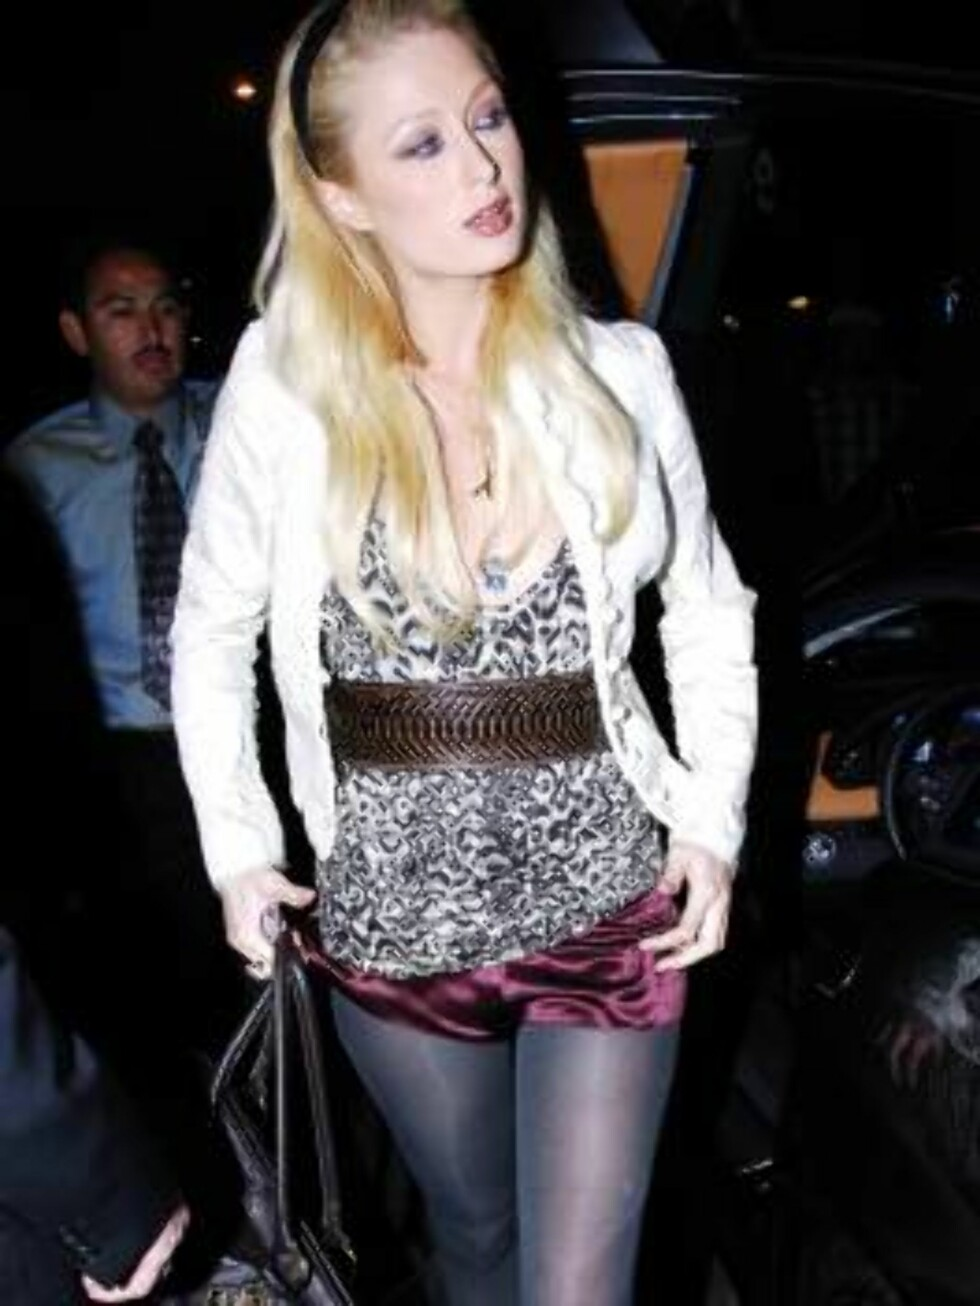 Paris Hilton leaving club Shag July 10, 2006 shows a strange style...X17agency exclusive Foto: All Over Press